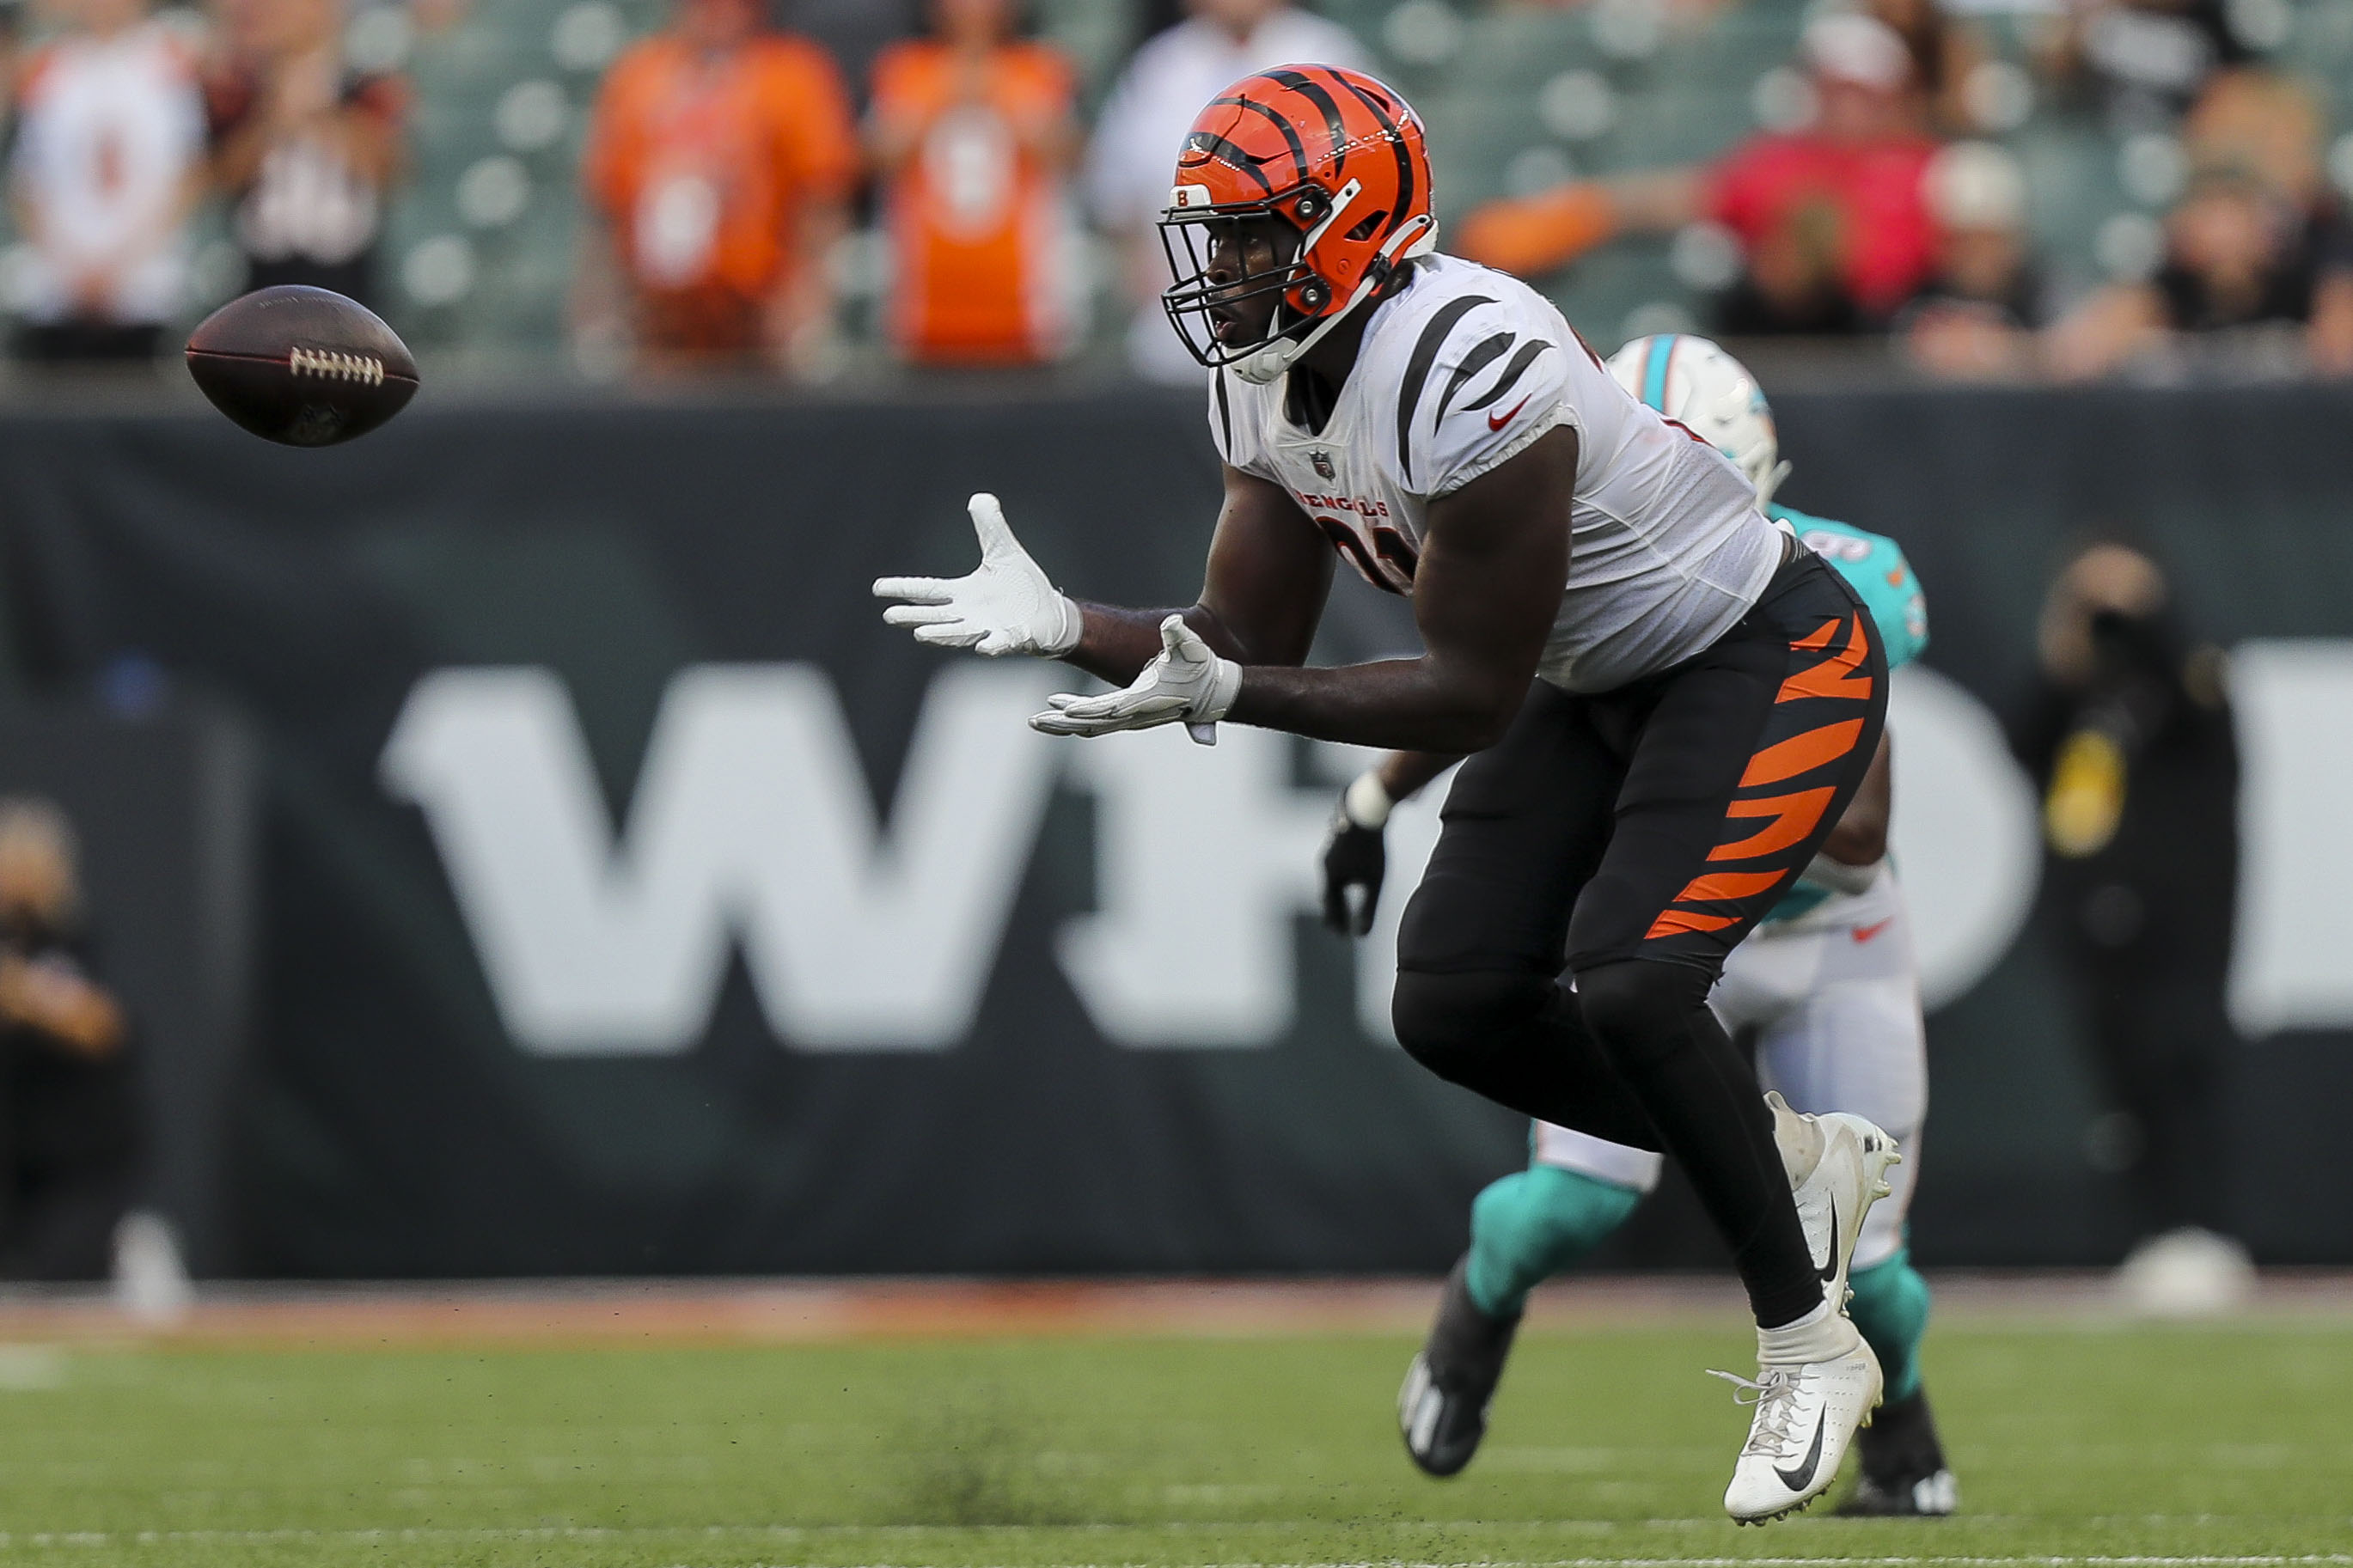 Cincinnati Bengals running back Jacques Patrick (31) catches a pass against the Miami Dolphins in the second half at Paul Brown Stadium.